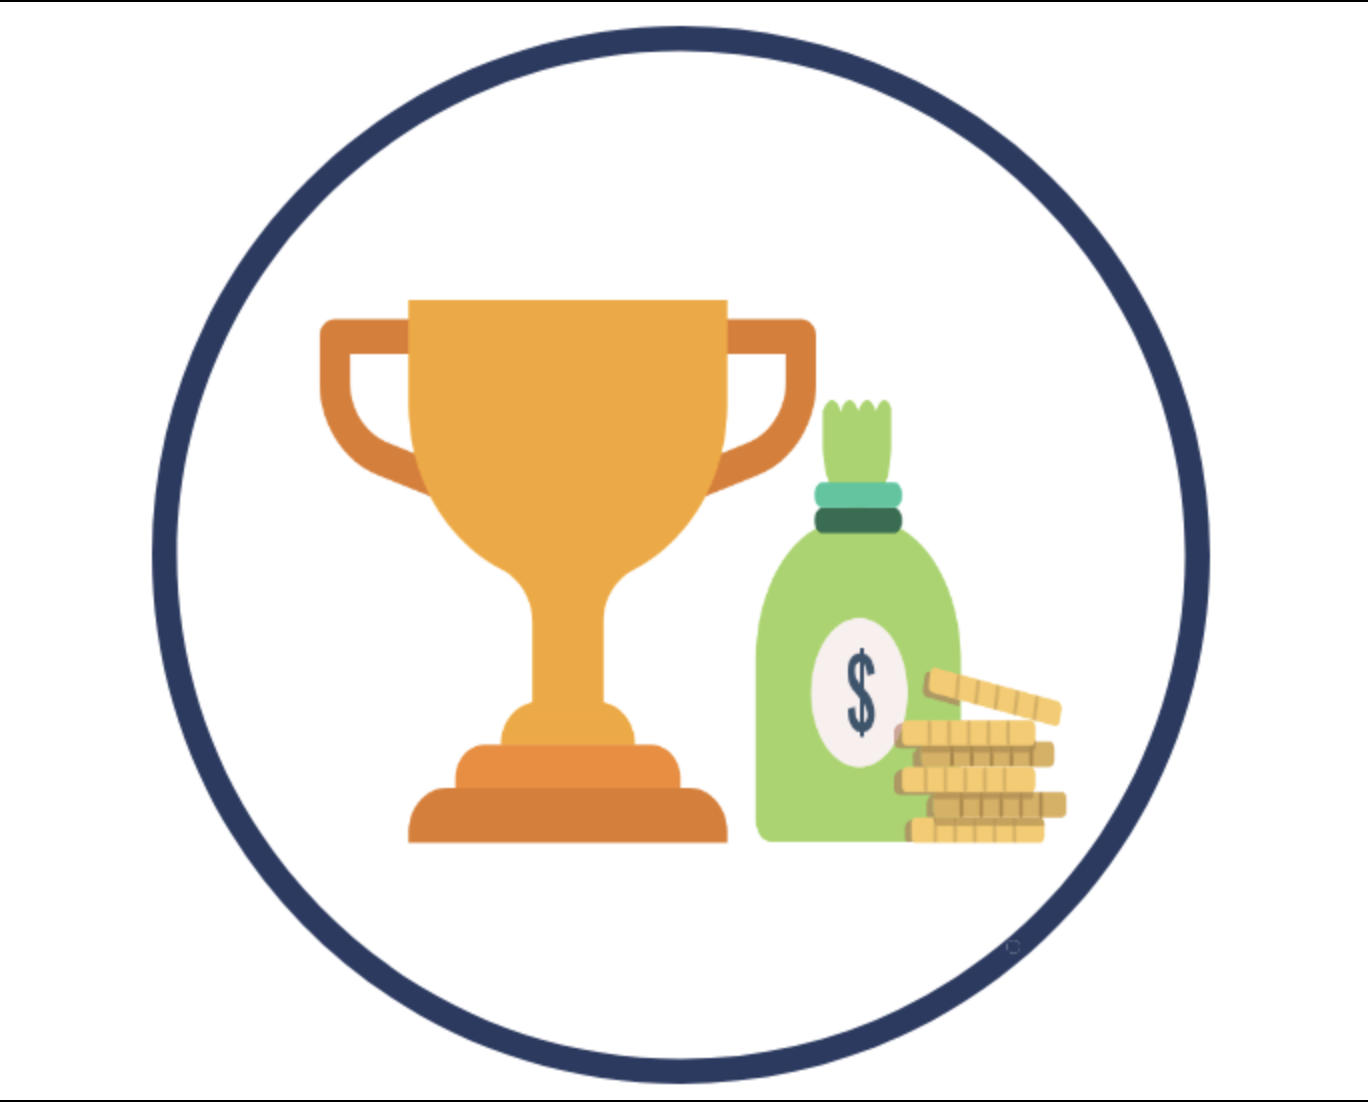 Graphic depicting a trophy and a bag of money, representing scholarship awards